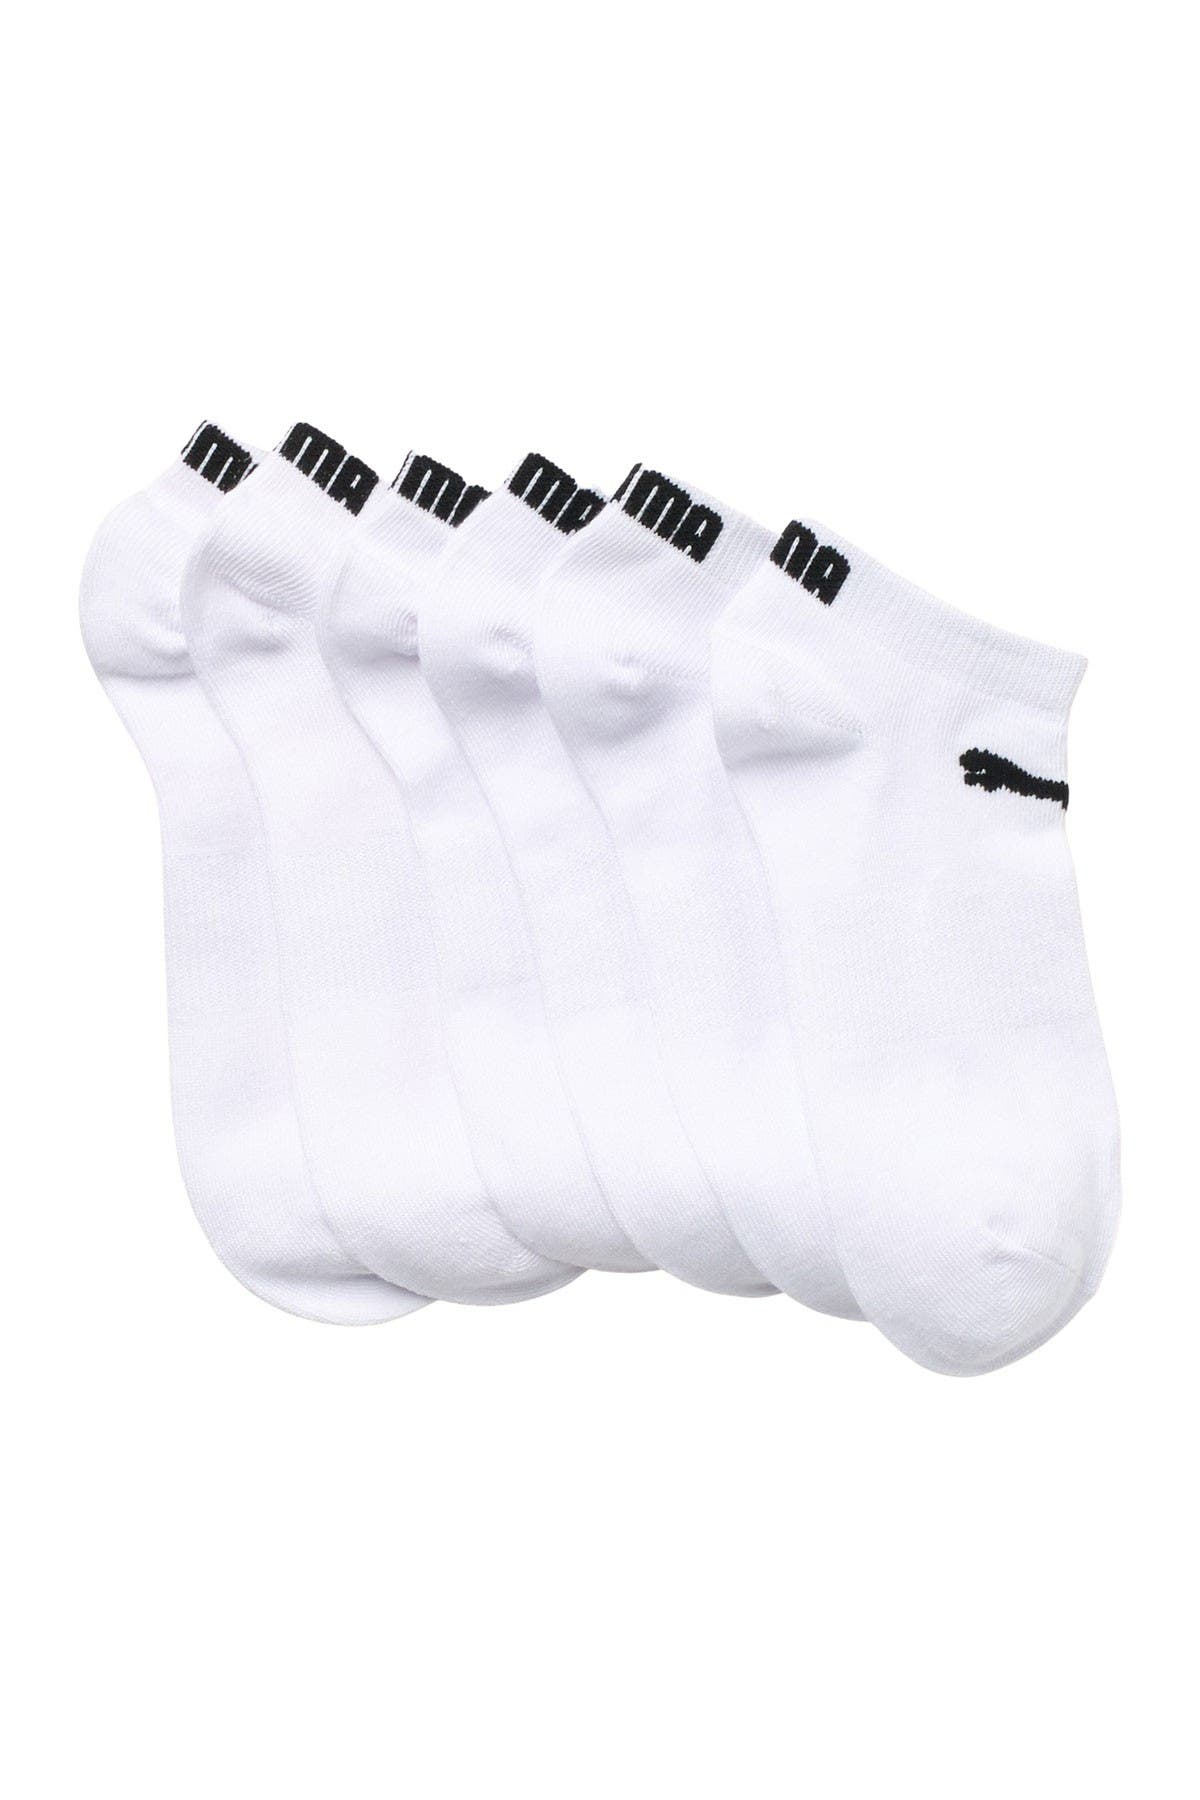 Image of PUMA Non-Terry Low Cut Socks - Pack of 6